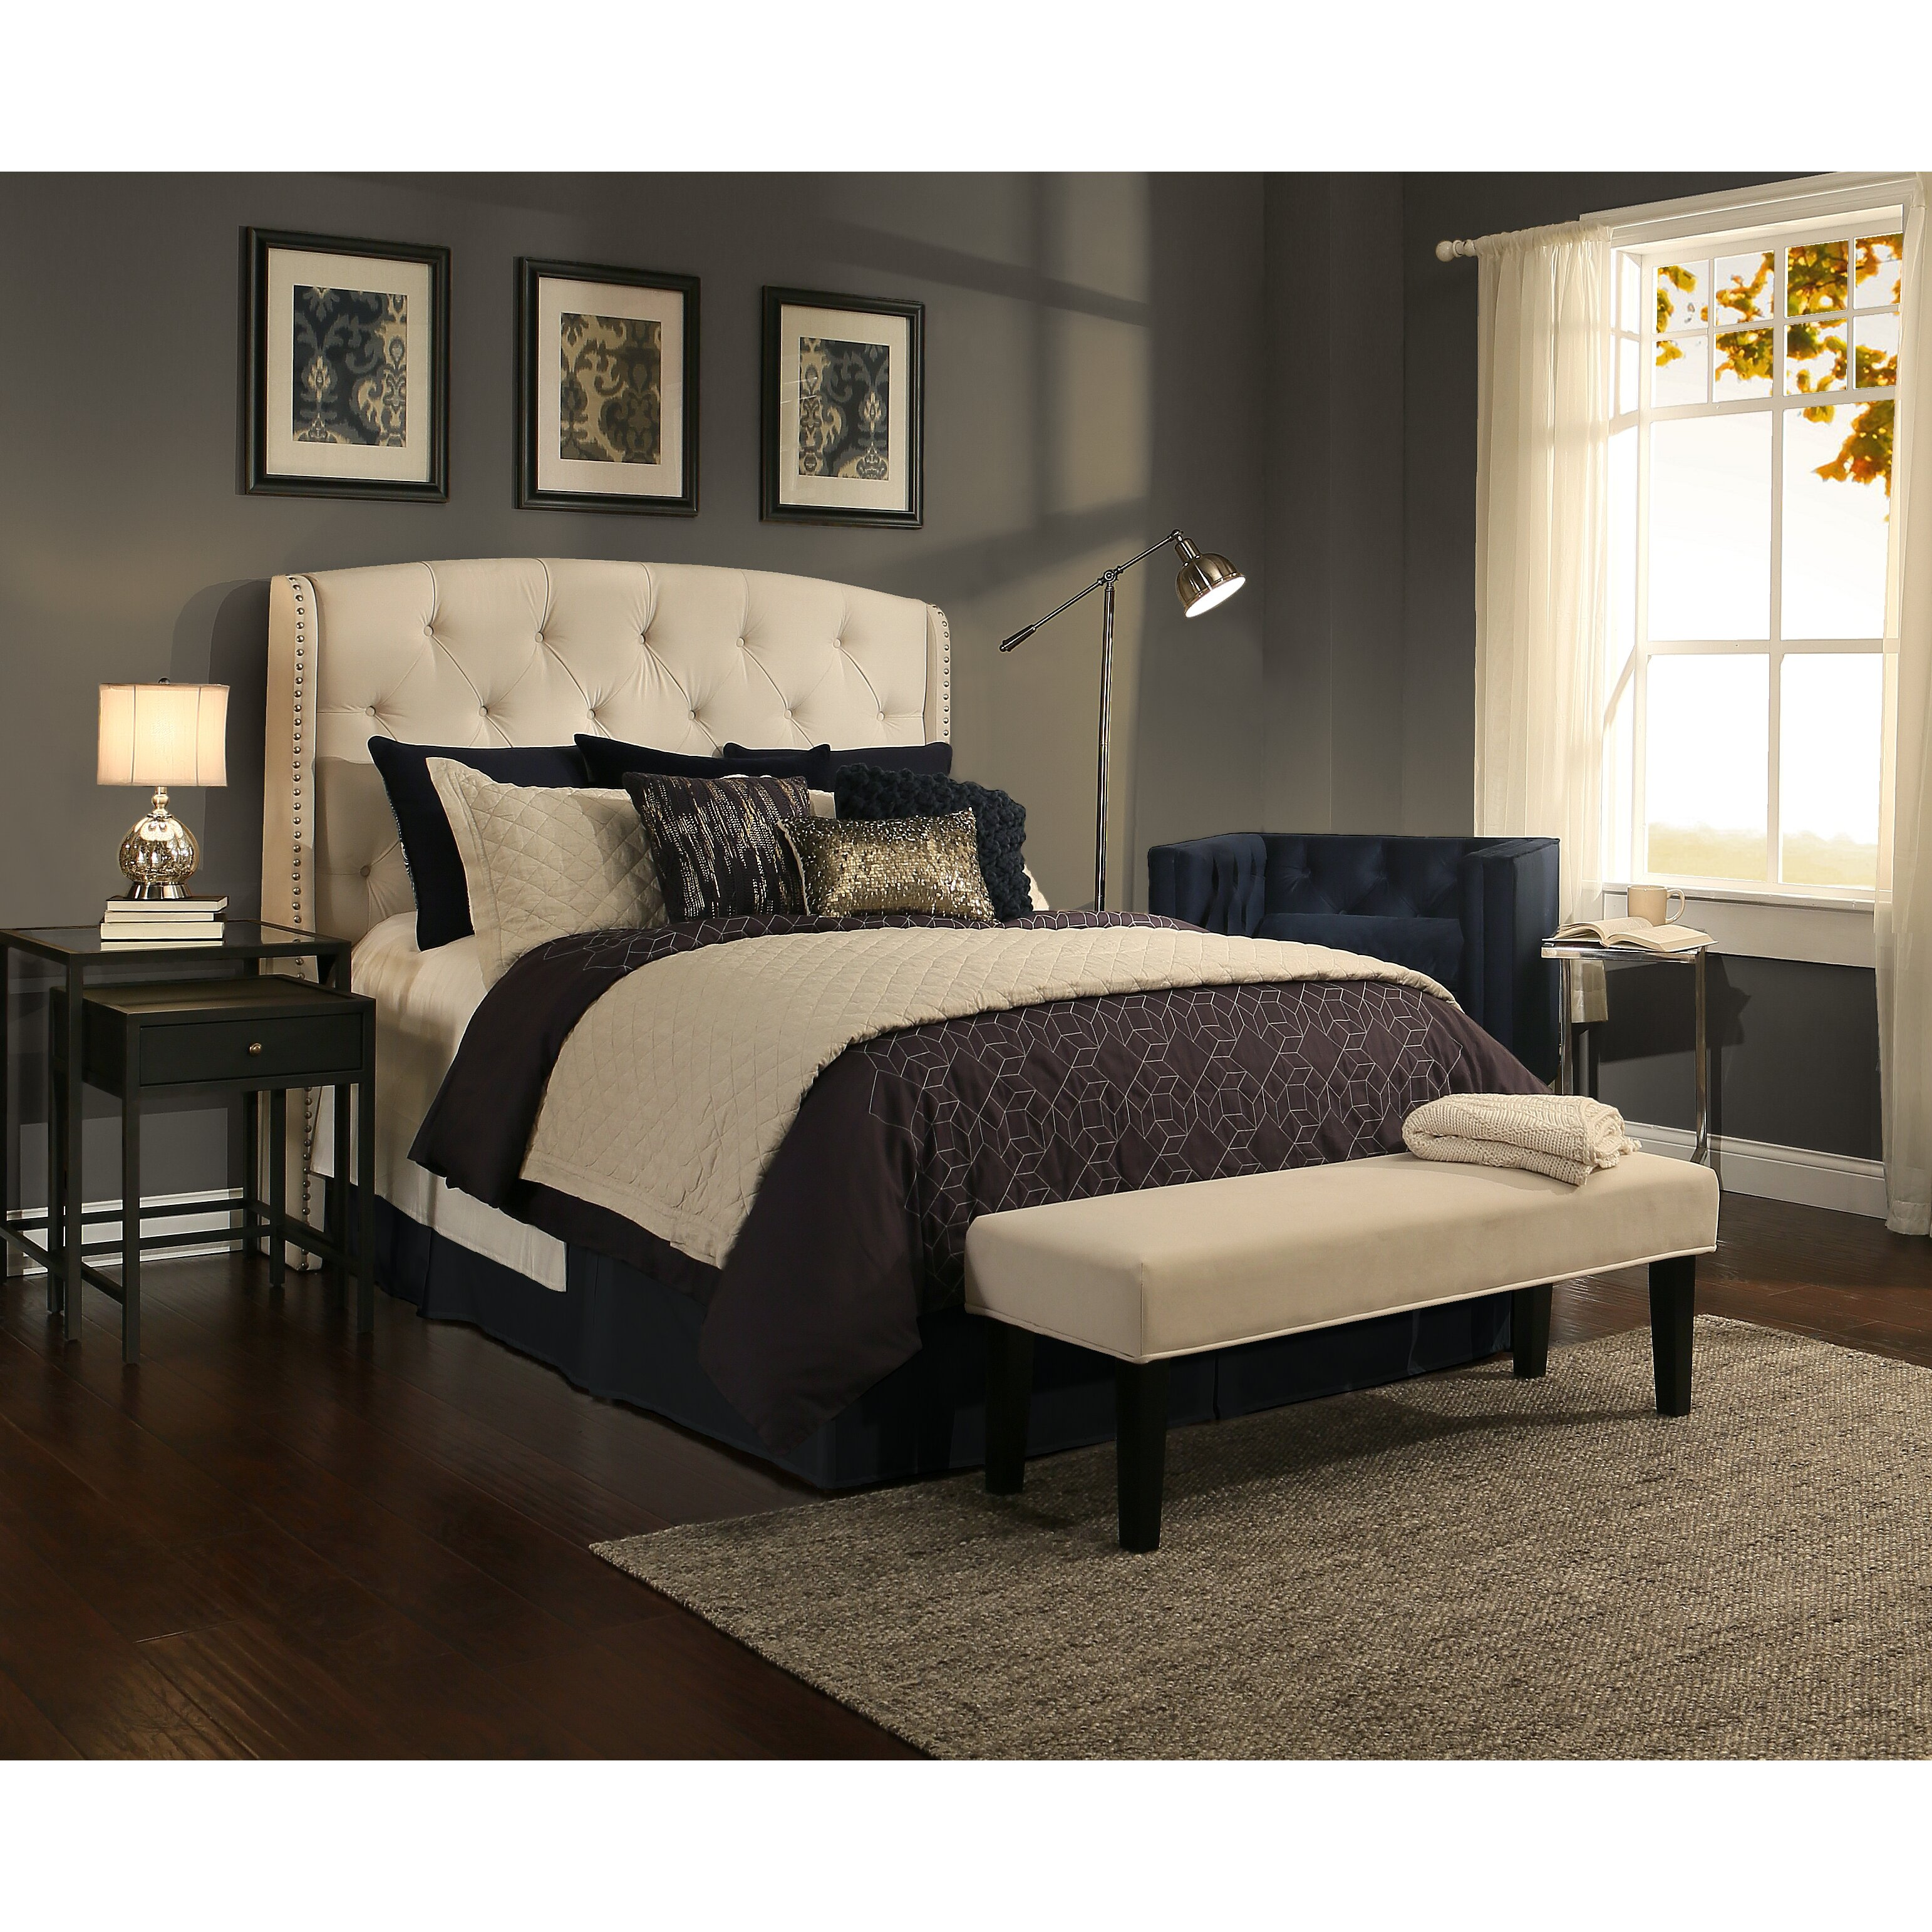 peyton upholstered headboard and bedroom bench